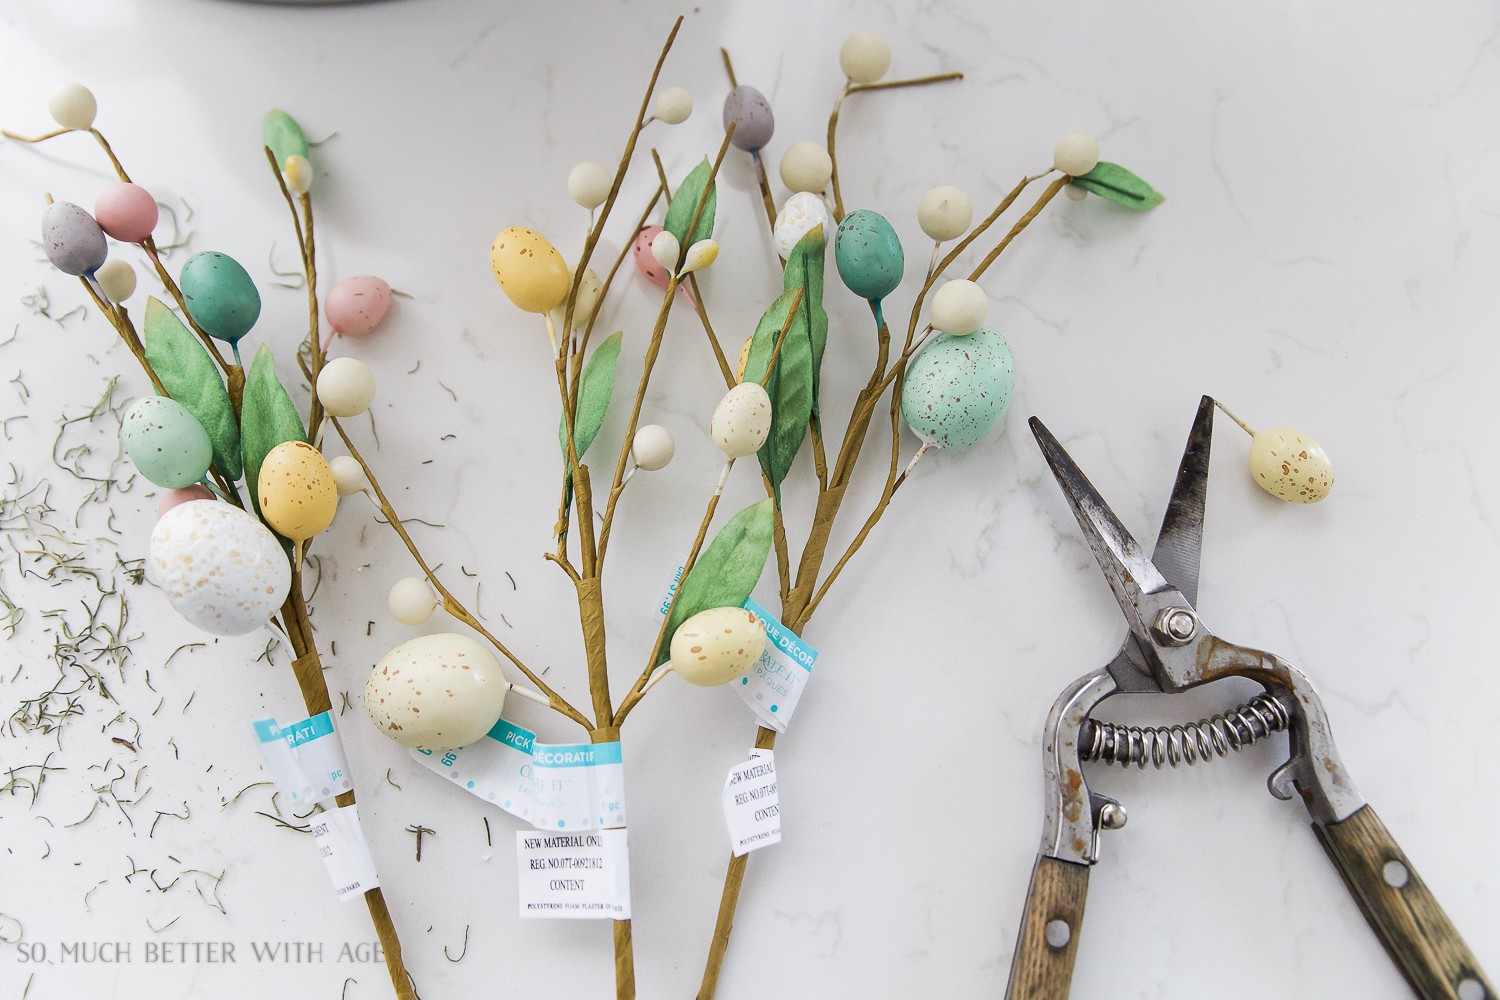 Glass Easter Jars with Bunny Ears / snipping the fake eggs off the branches - So Much Better With Age